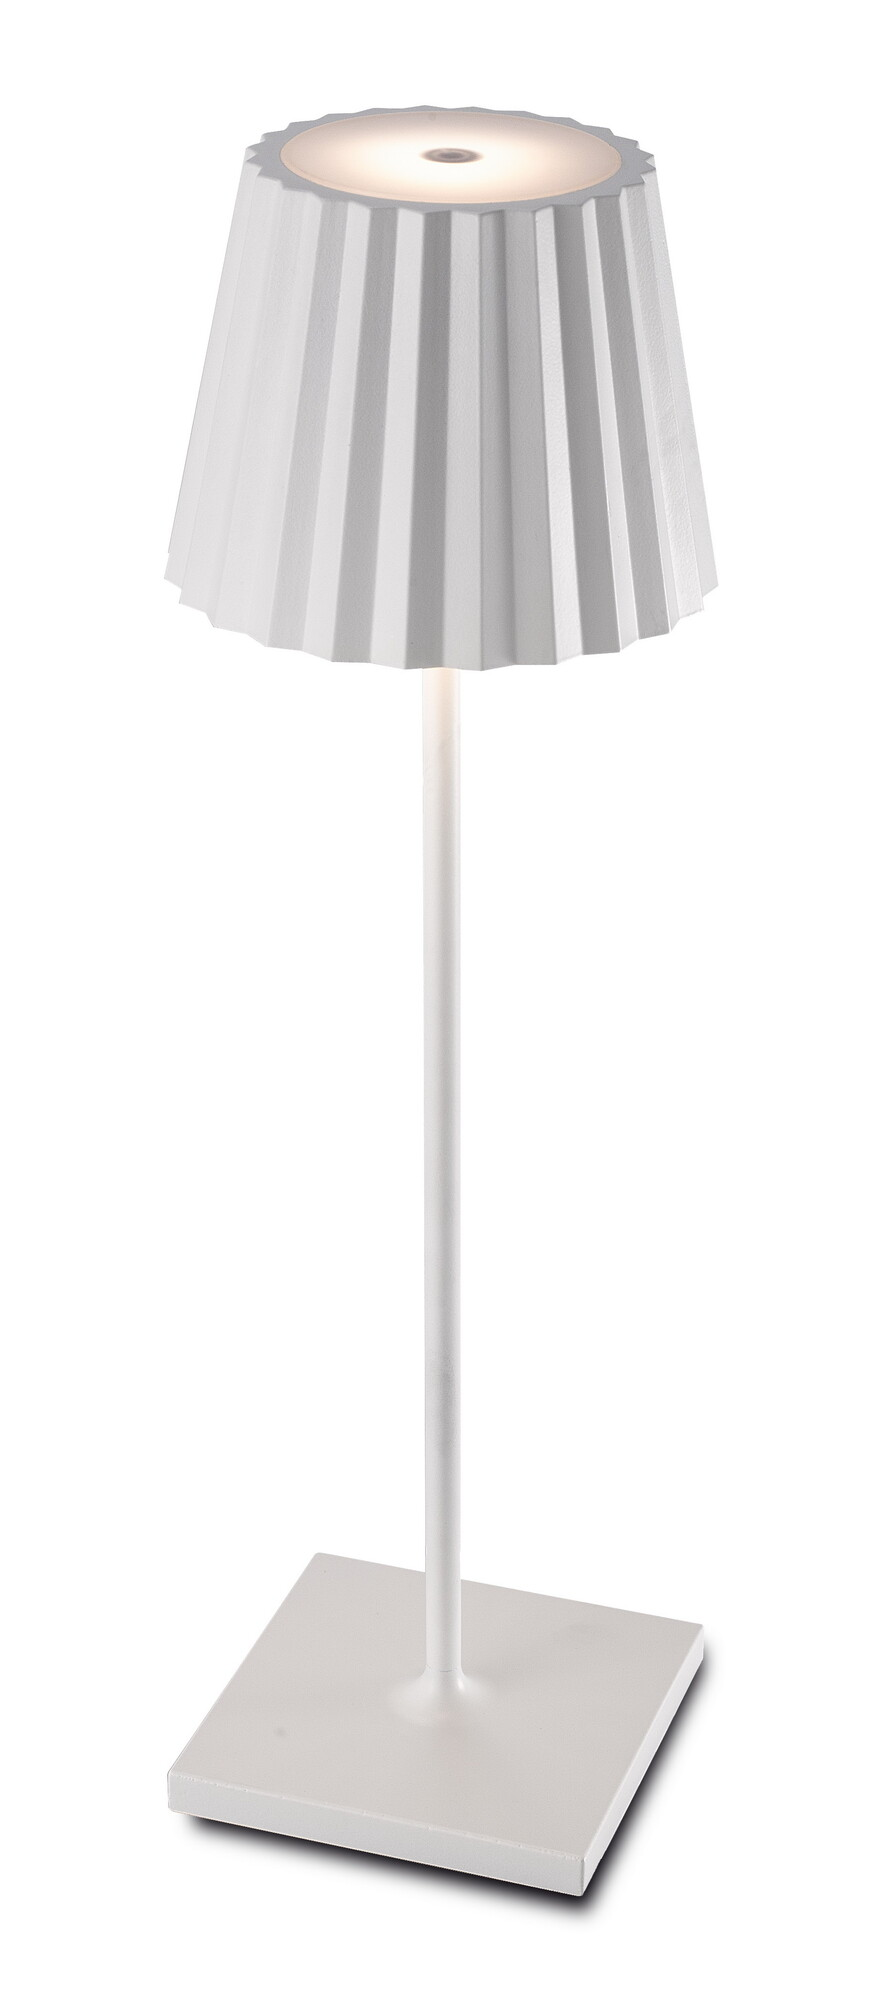 K2 Lampe de table LED 1x22W/188lm Blanc